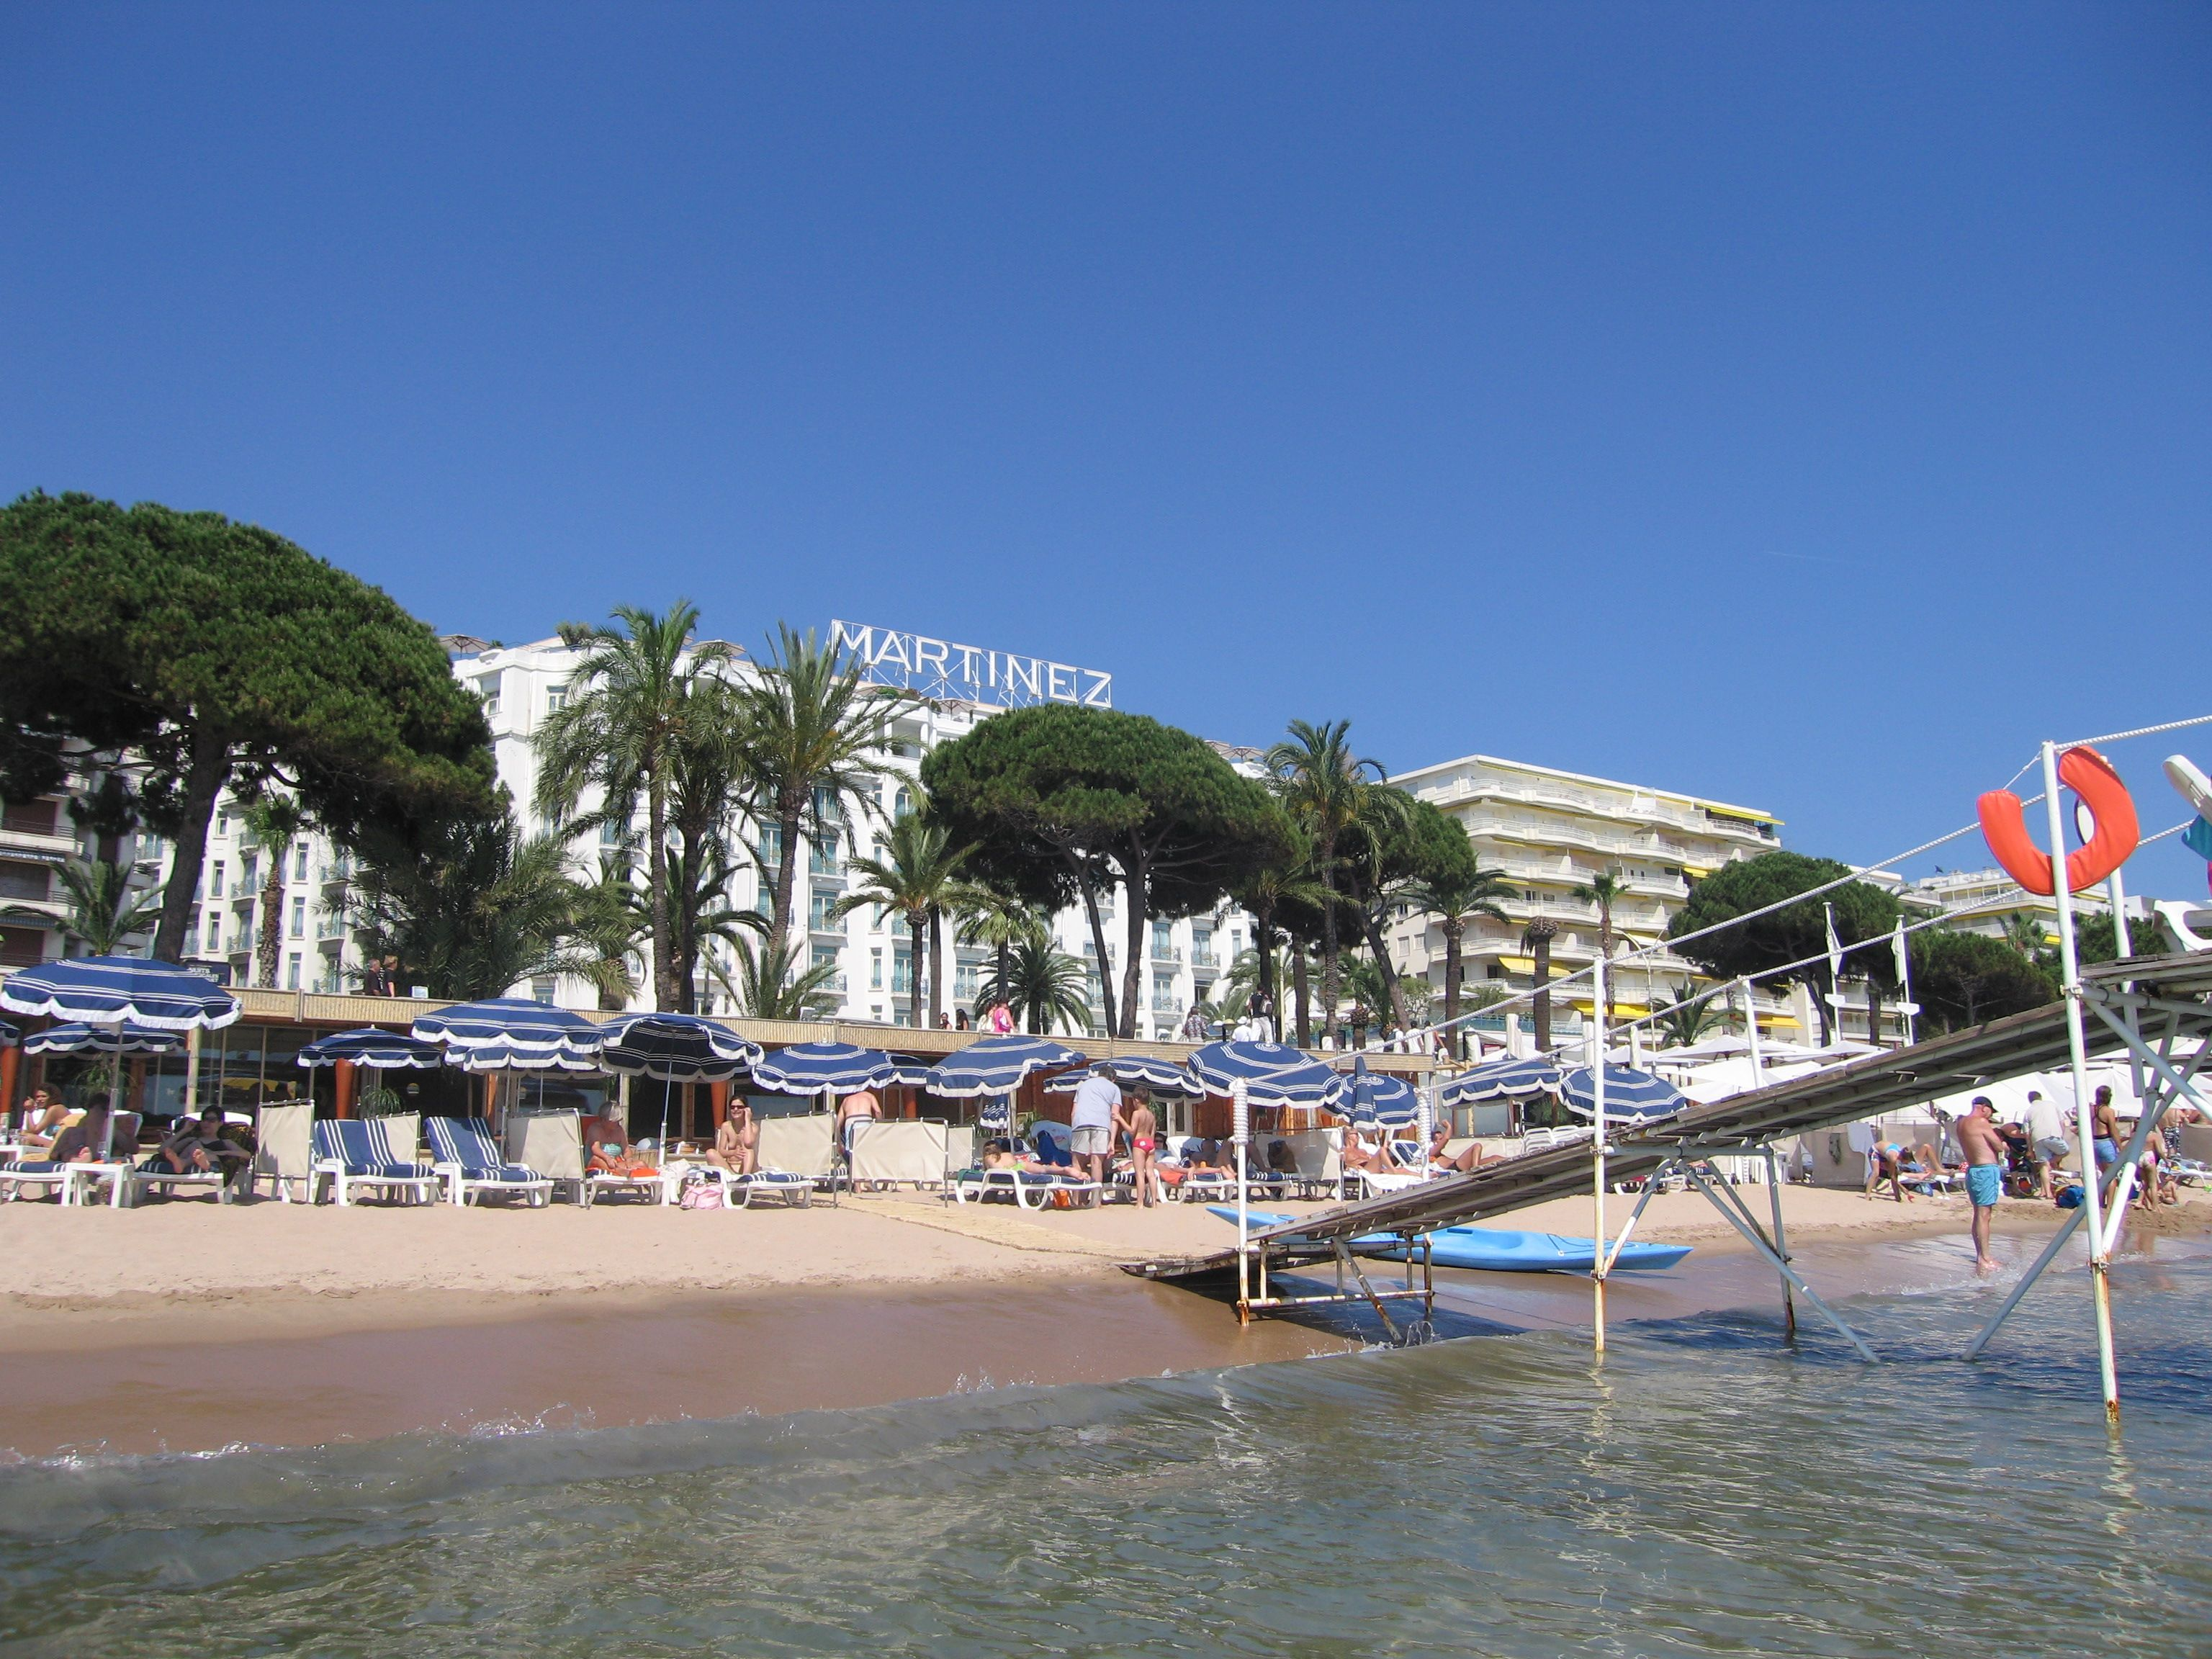 Hotel Martinez Cannes Exceptional Places 've Stayed